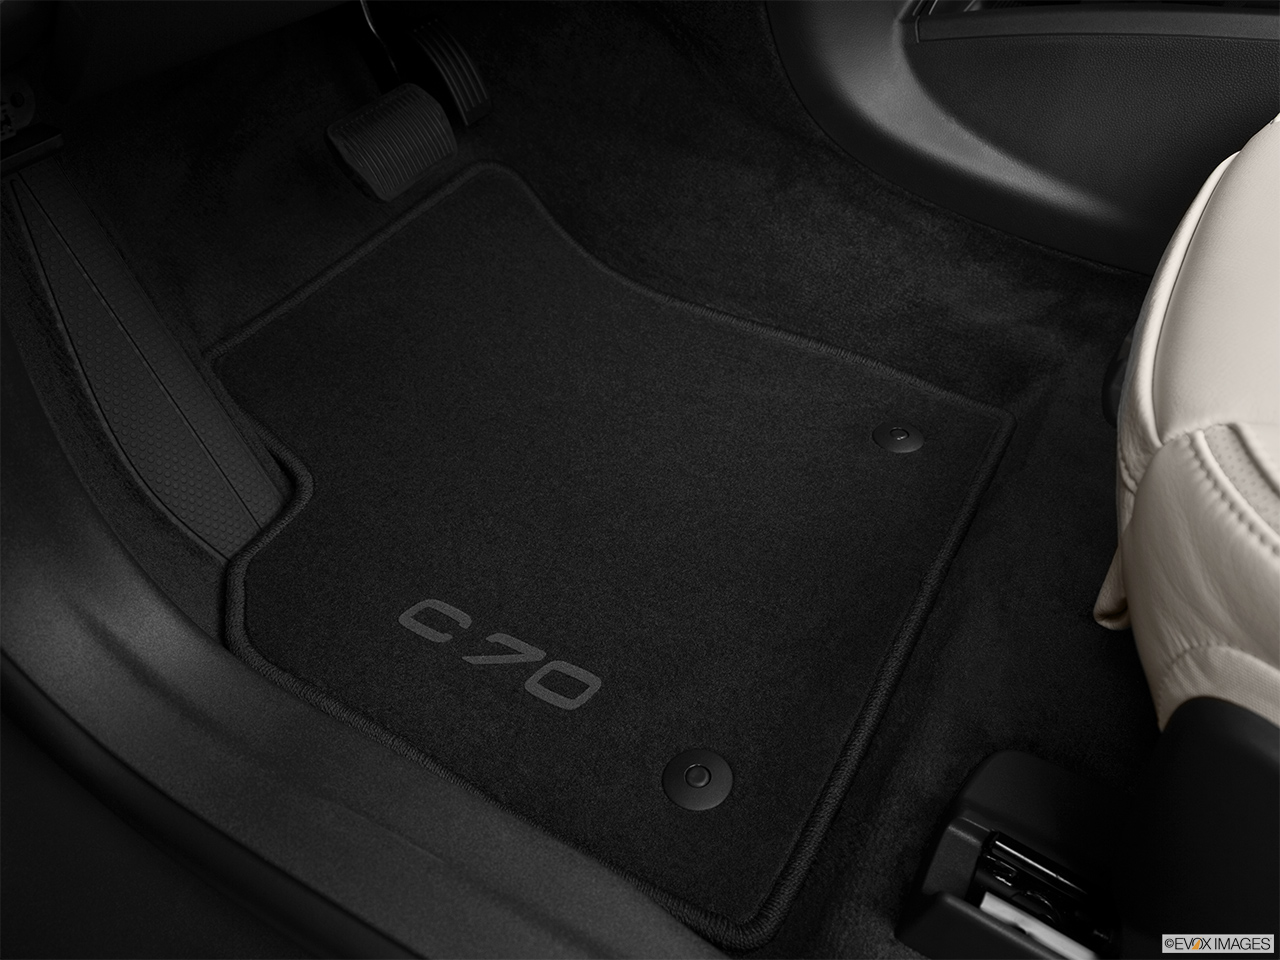 2013 Volvo C70 T5 Platinum Driver's floor mat and pedals. Mid-seat level from outside looking in.